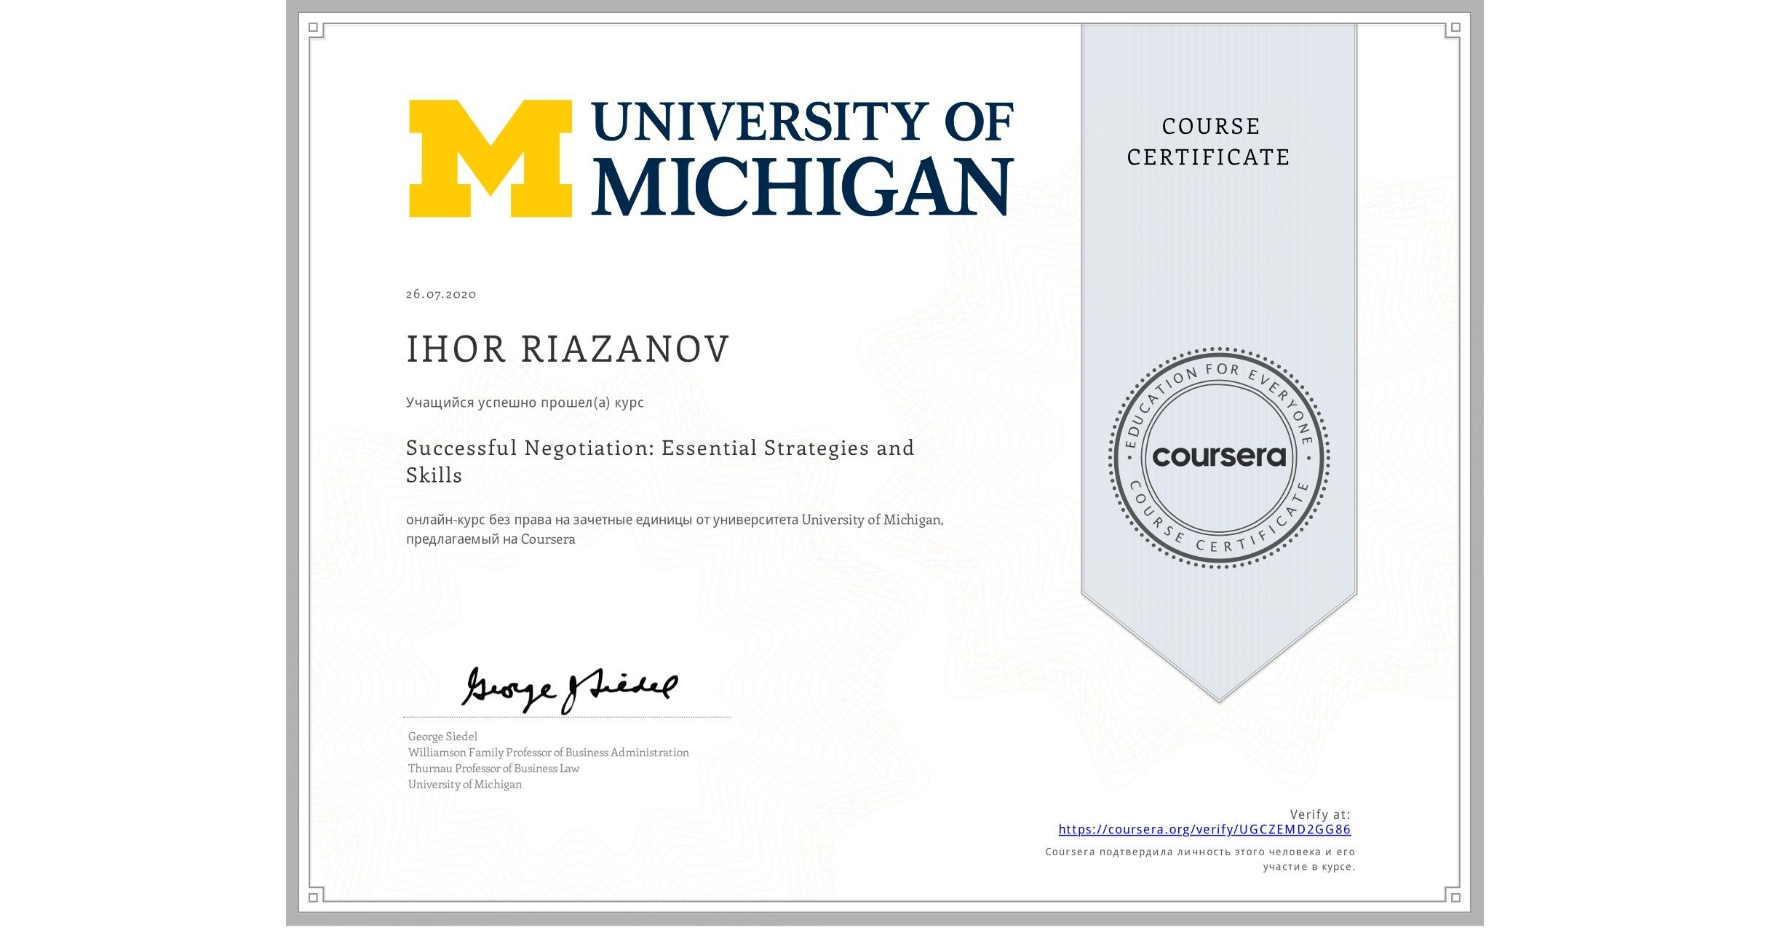 View certificate for IHOR RIAZANOV, Successful Negotiation: Essential Strategies and Skills, an online non-credit course authorized by University of Michigan and offered through Coursera